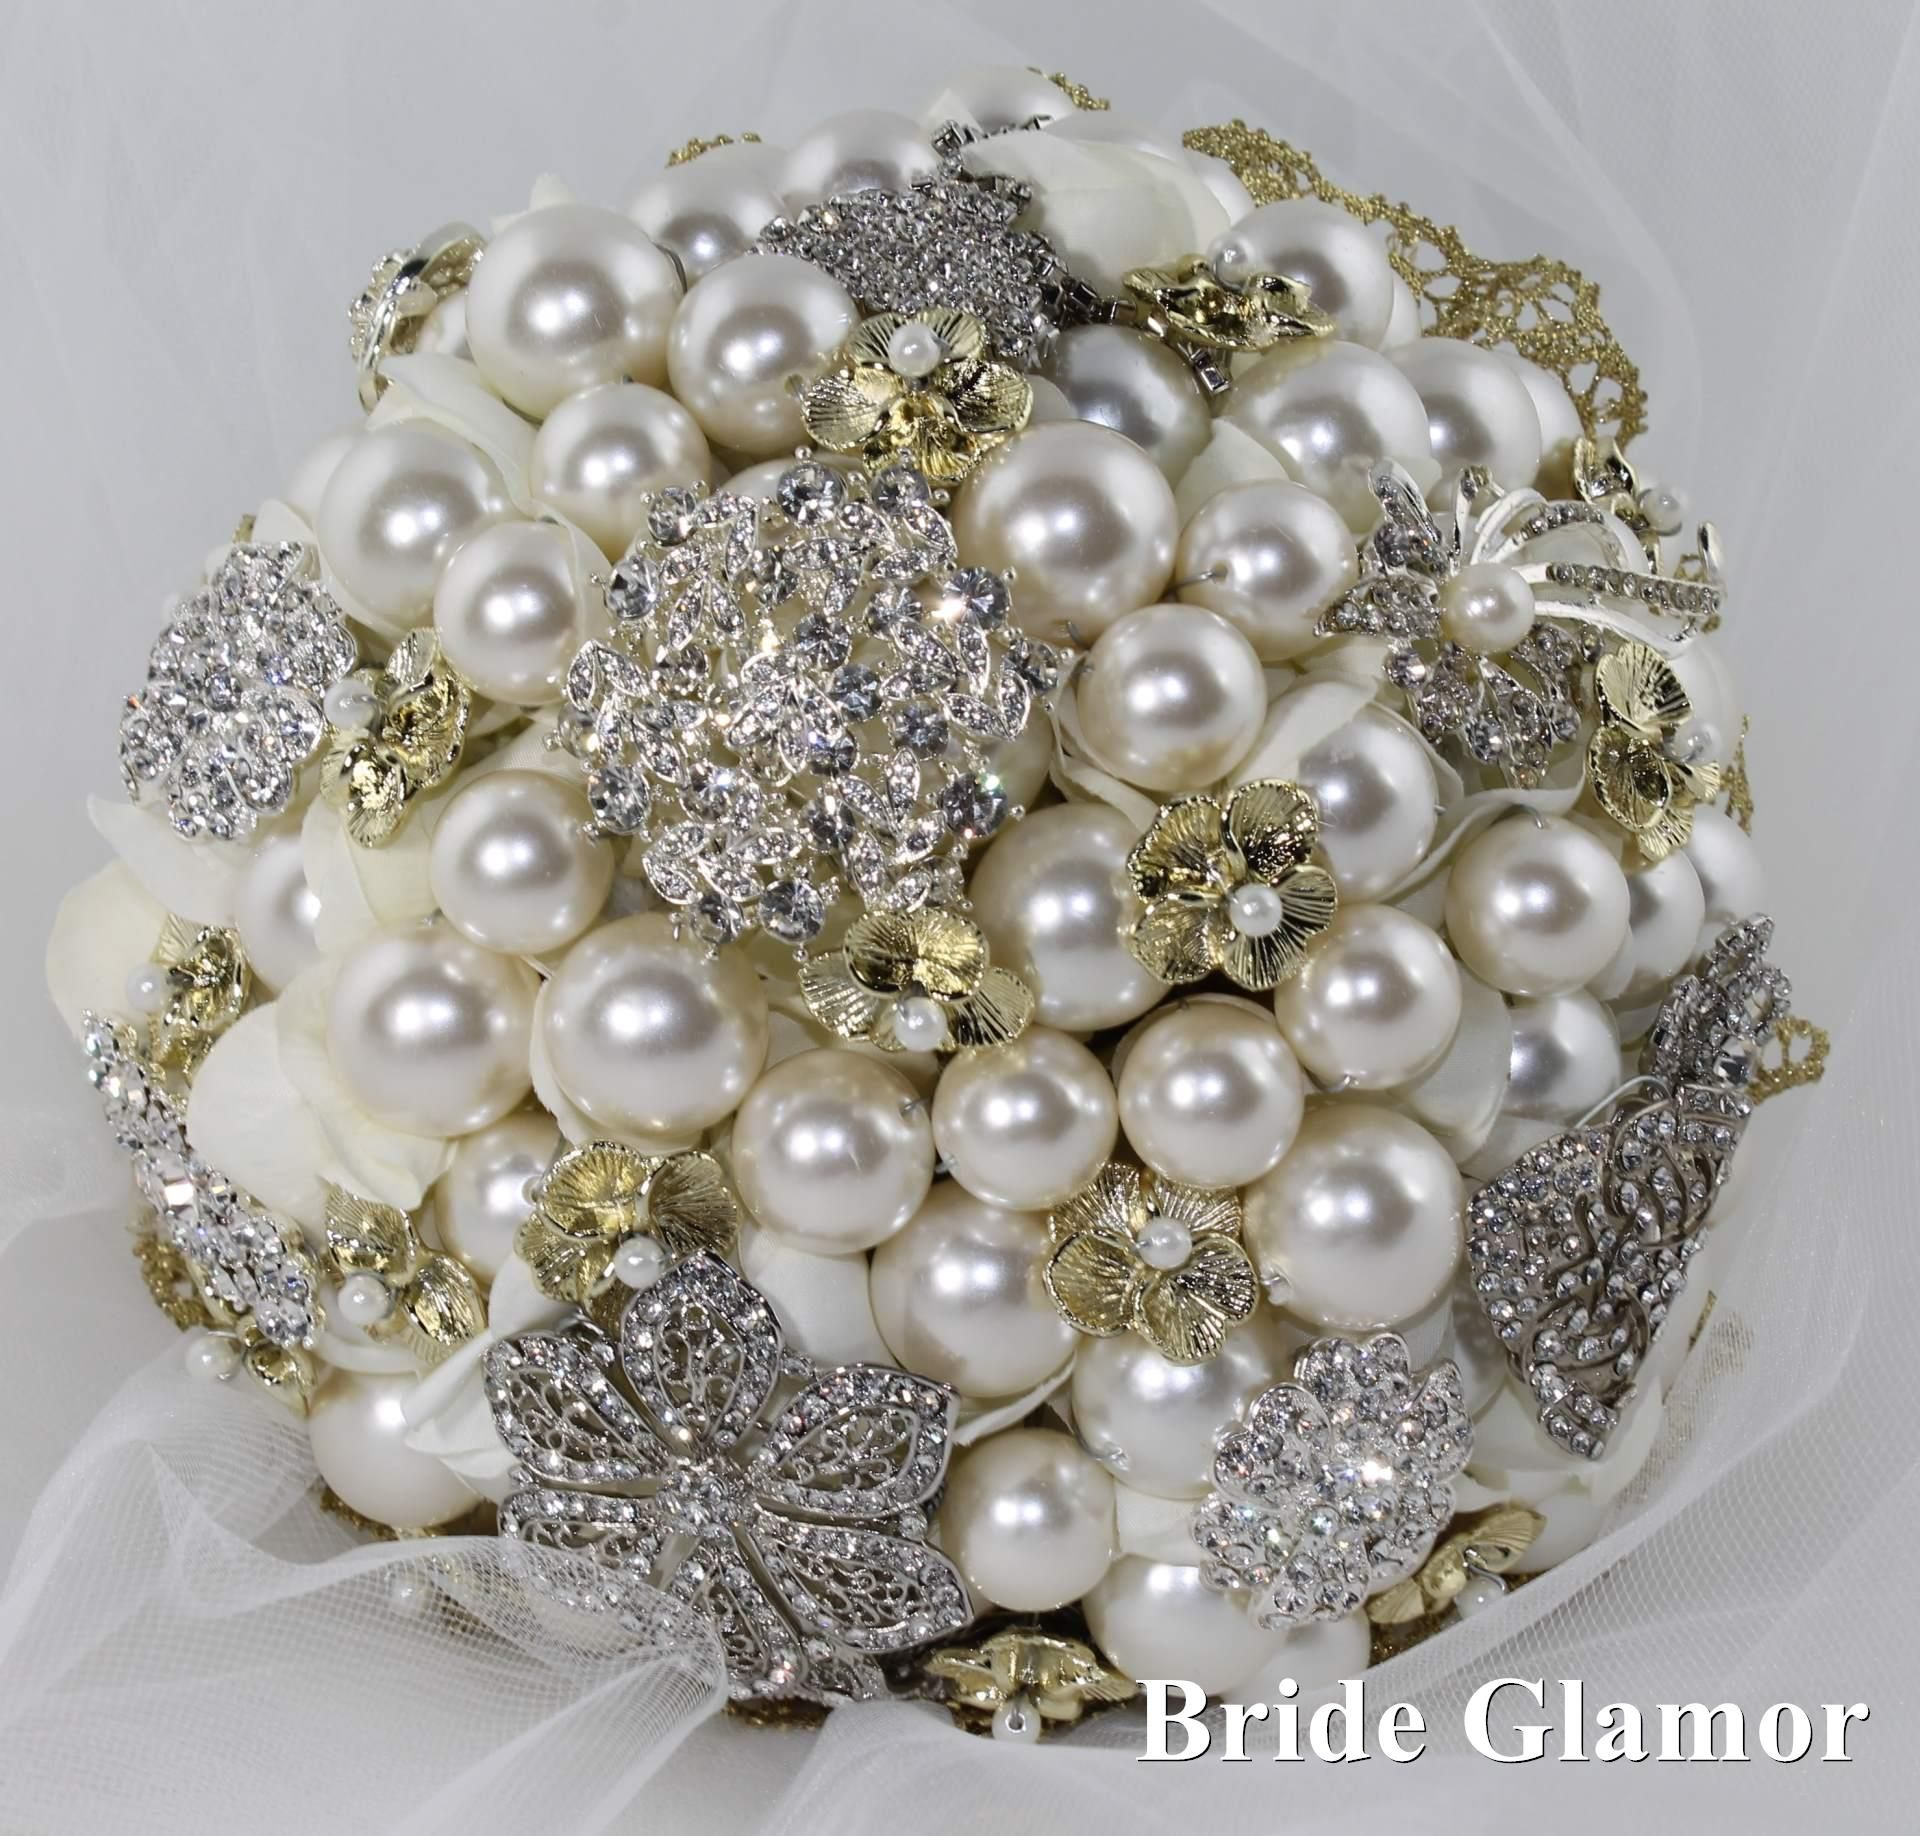 Silver and gold brooch bouquet by Bride Glamor in 2019